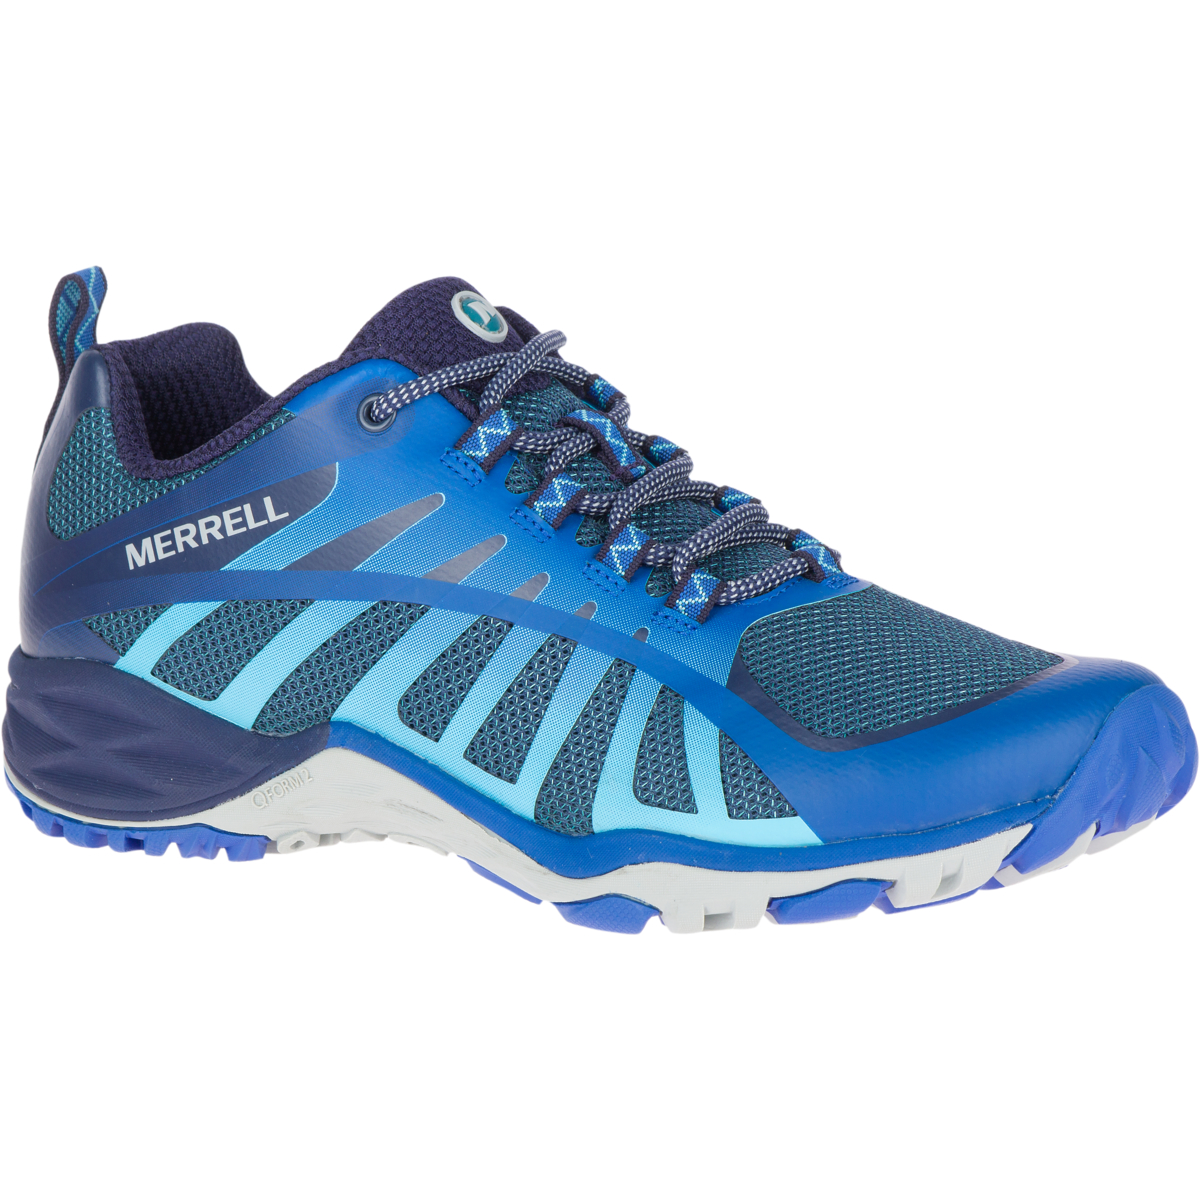 Berwick upon Tweed-Lime Shoe Co-Merrell- Siren Edge Q2-Colbalt blue-trainer-laces-summer